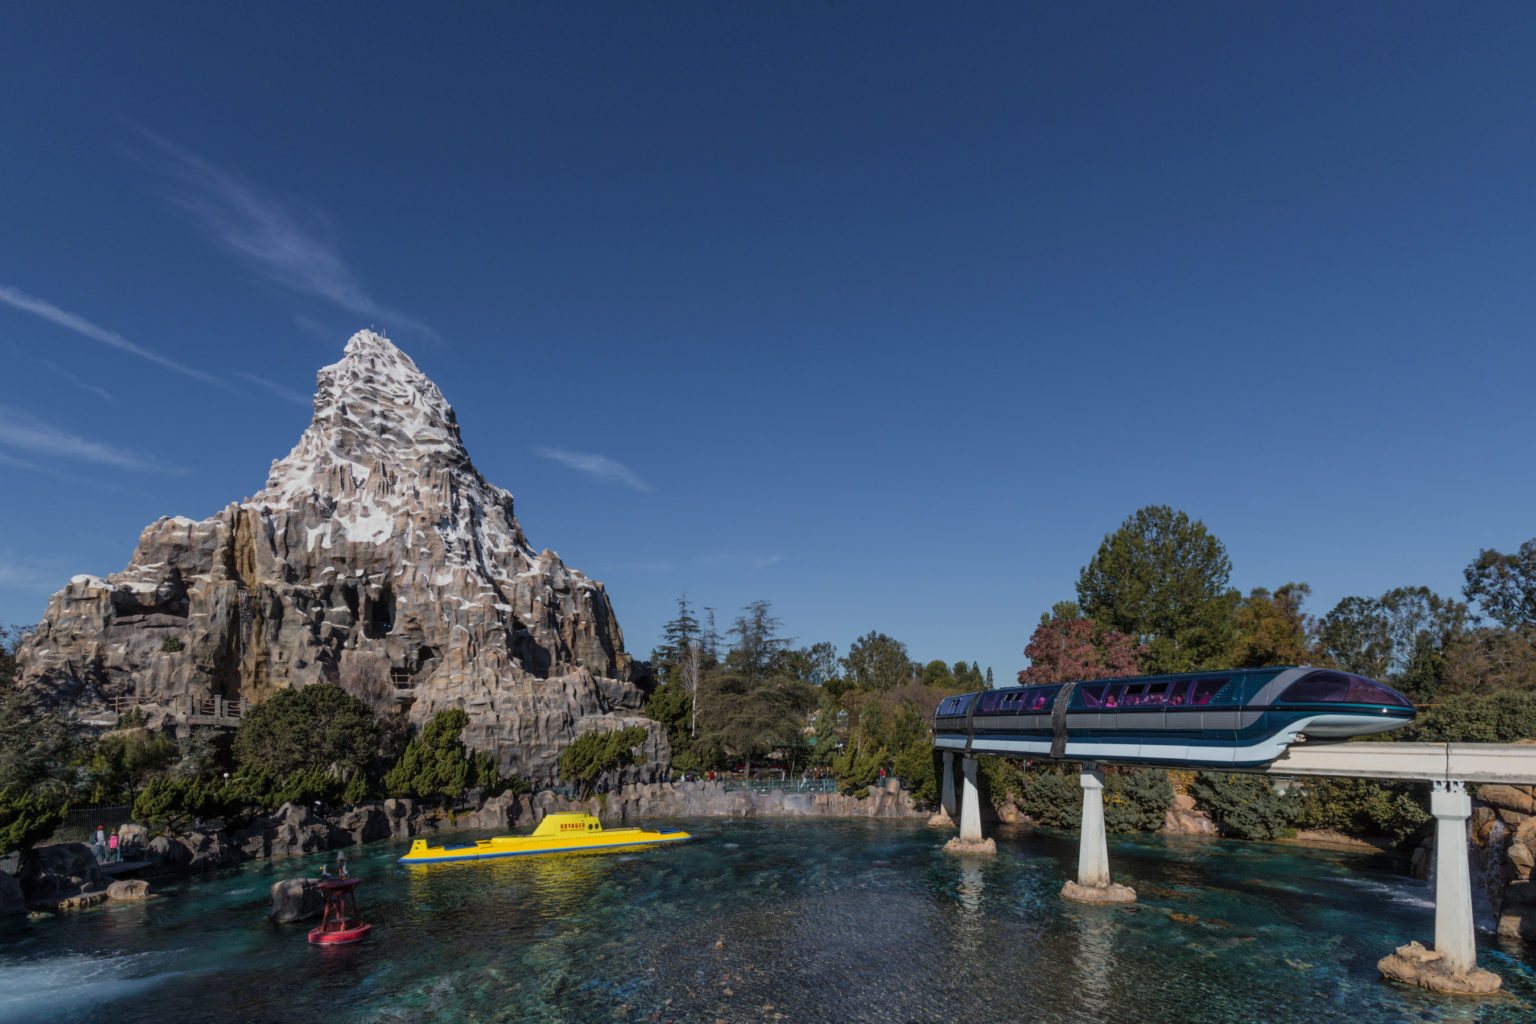 Three of the most popular attractions at Disneyland - the Matterhorn Bobsleds, Finding Nemo Submarine Voyage and Disneyland Monorail.